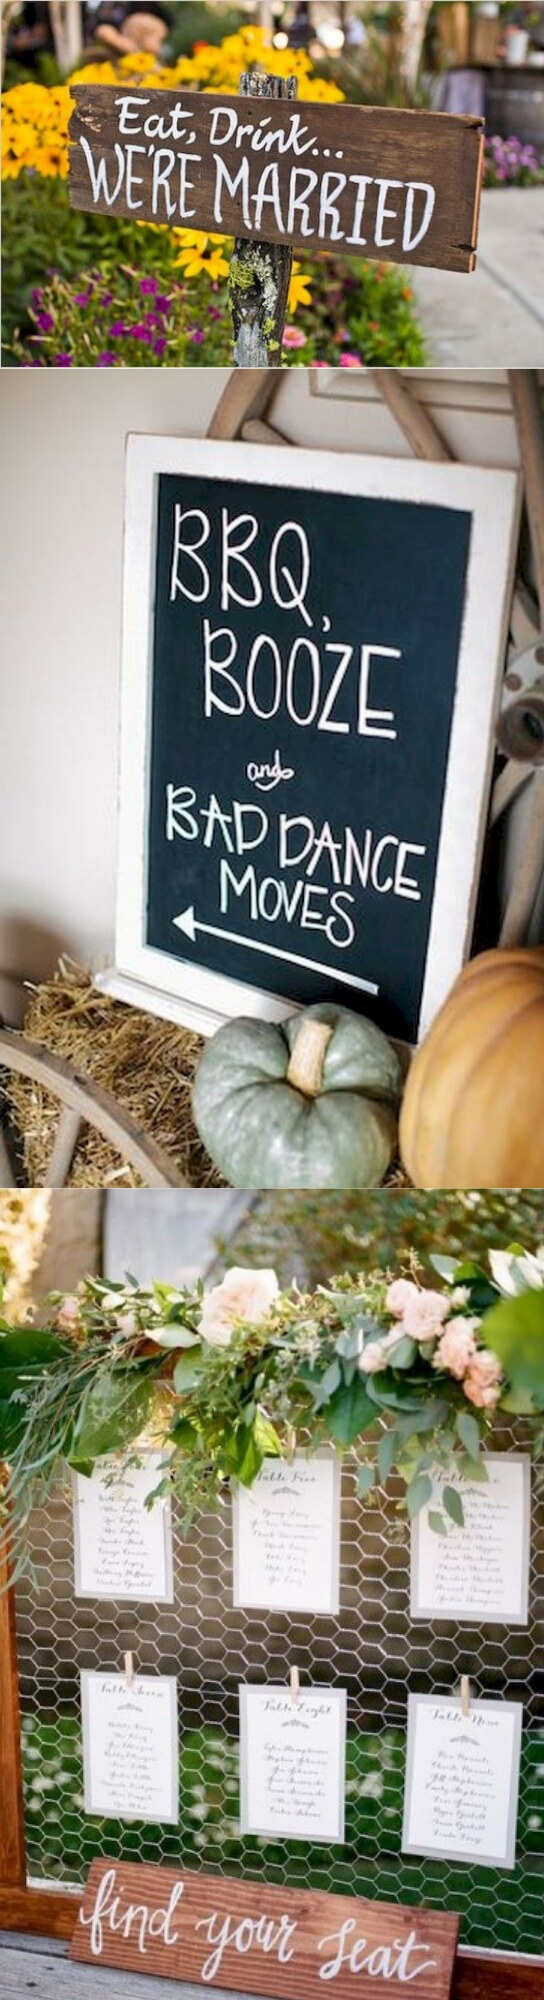 Wedding Welcome Sign | Creative & Rustic Backyard Wedding Ideas For Summer & Fall